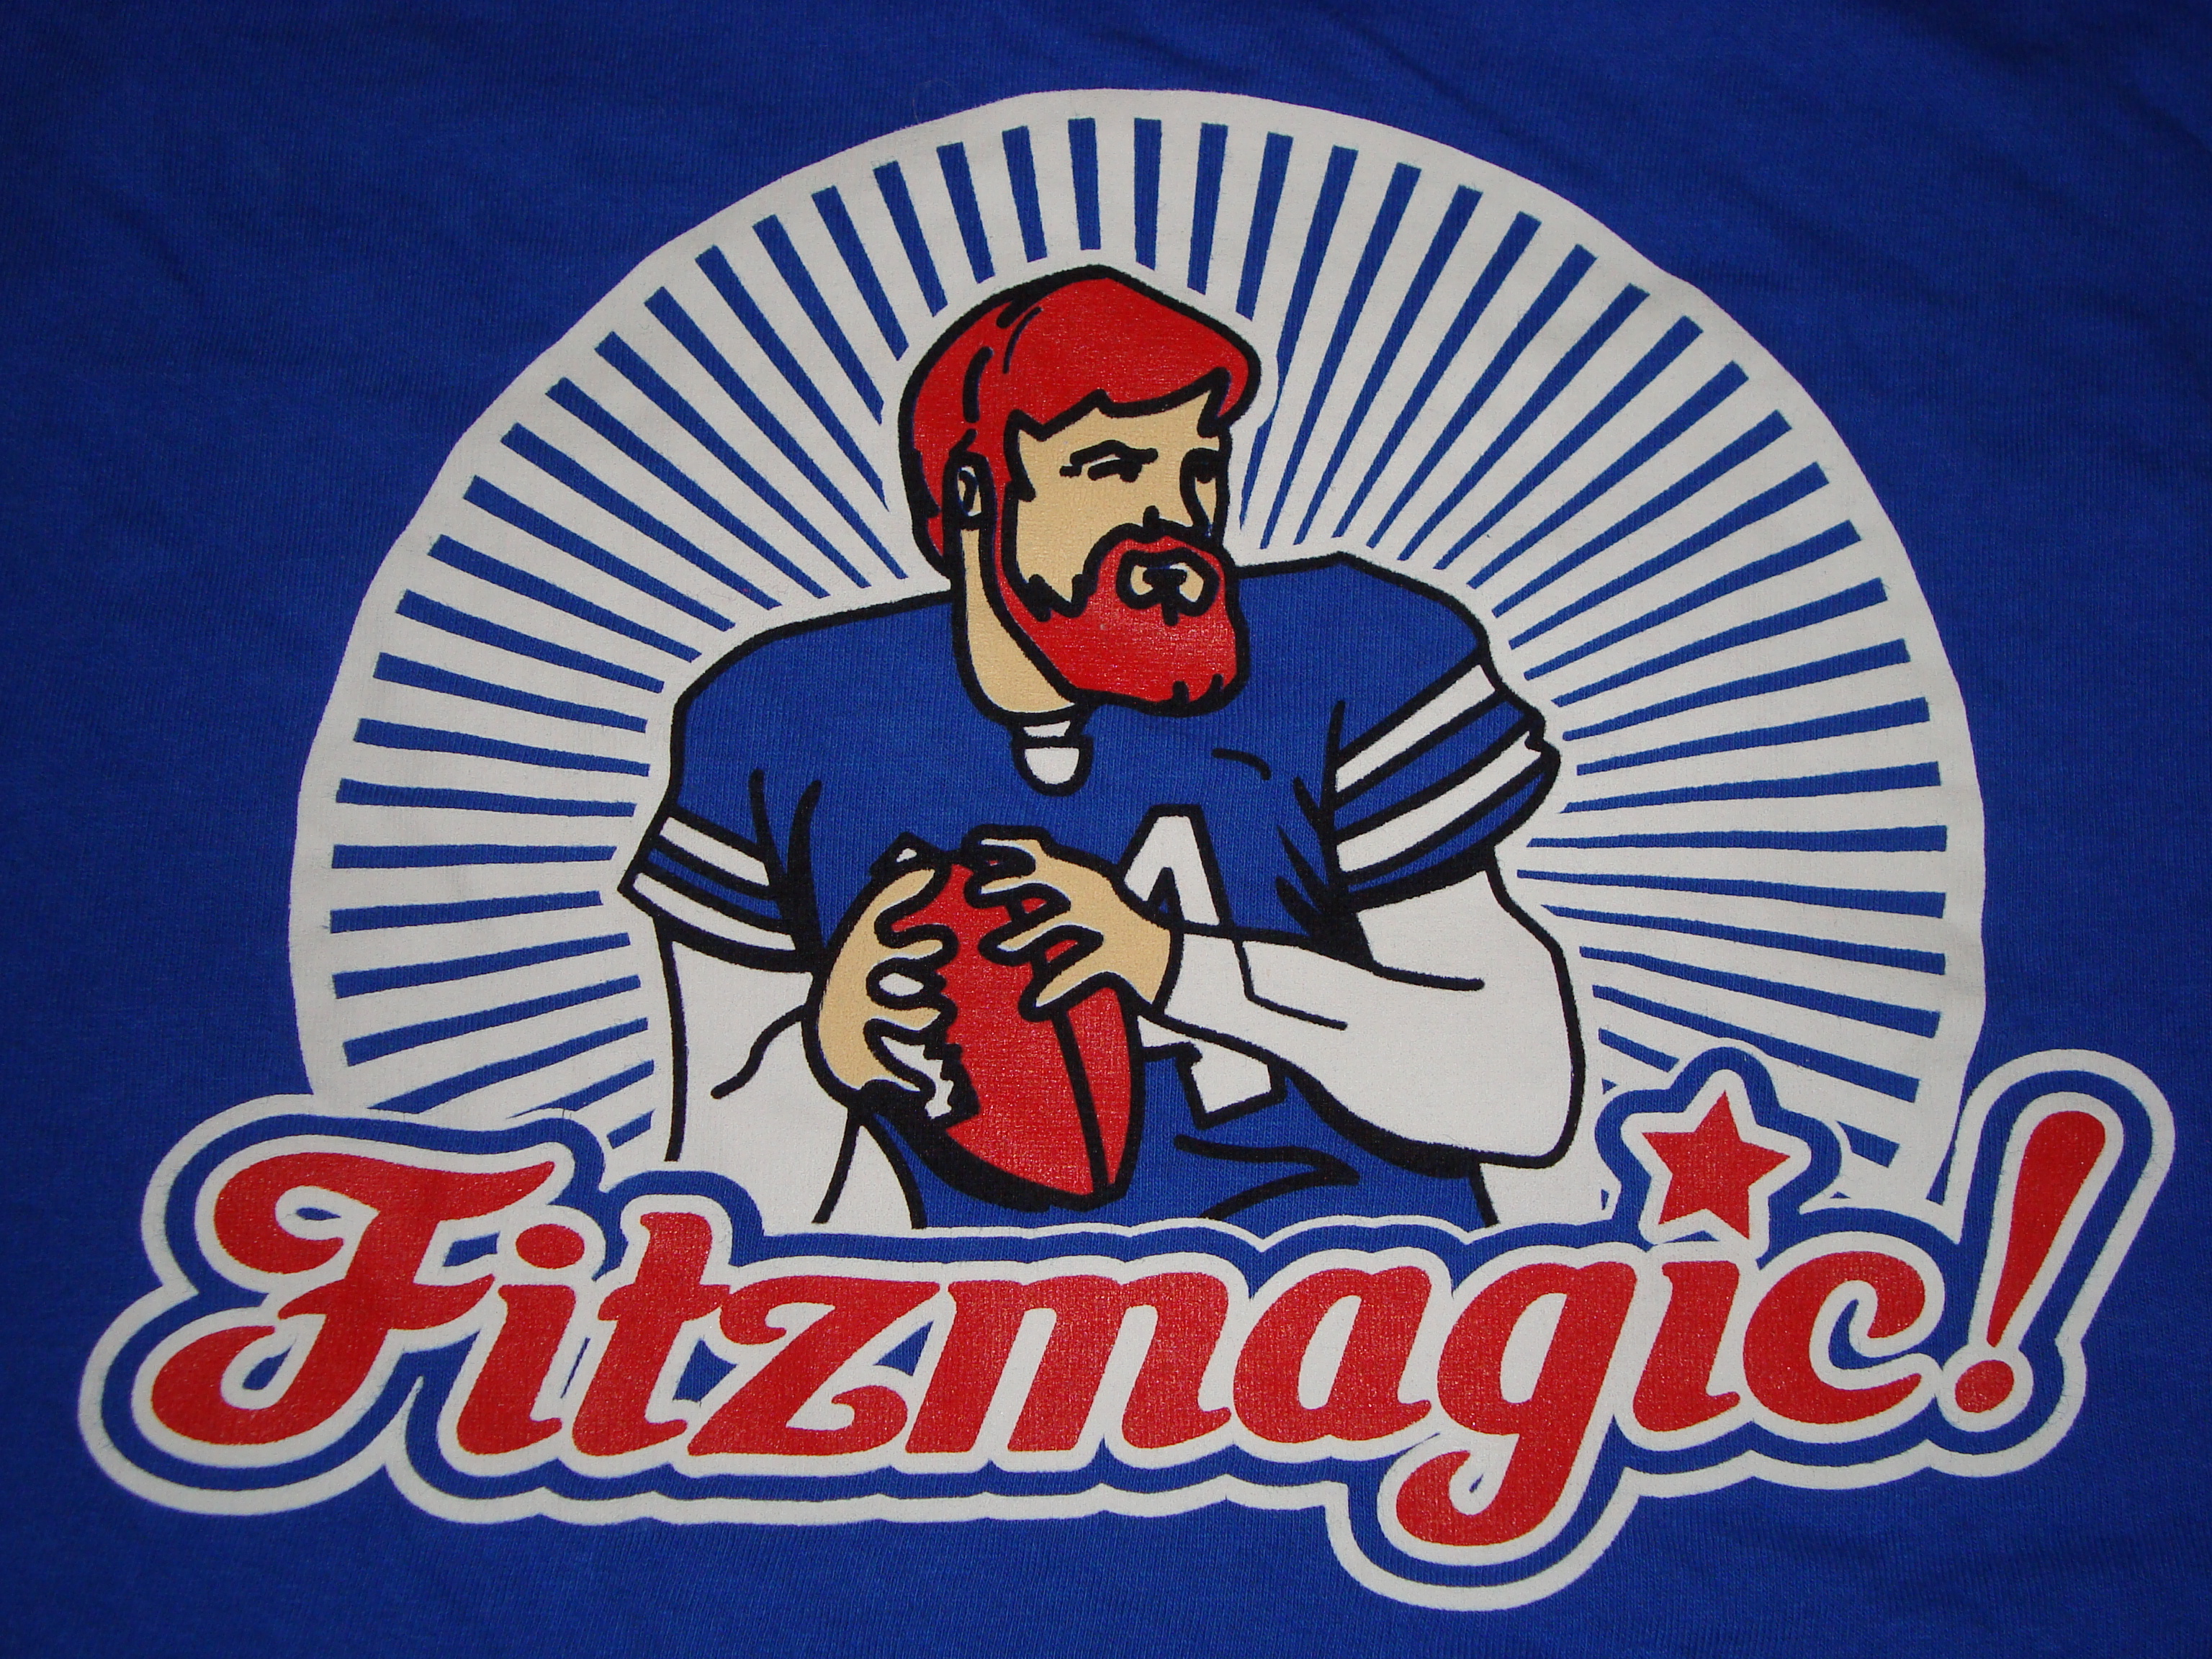 superior quality 7b158 d46f5 I guess it's not easy selling Ryan Fitzpatrick jerseys in ...